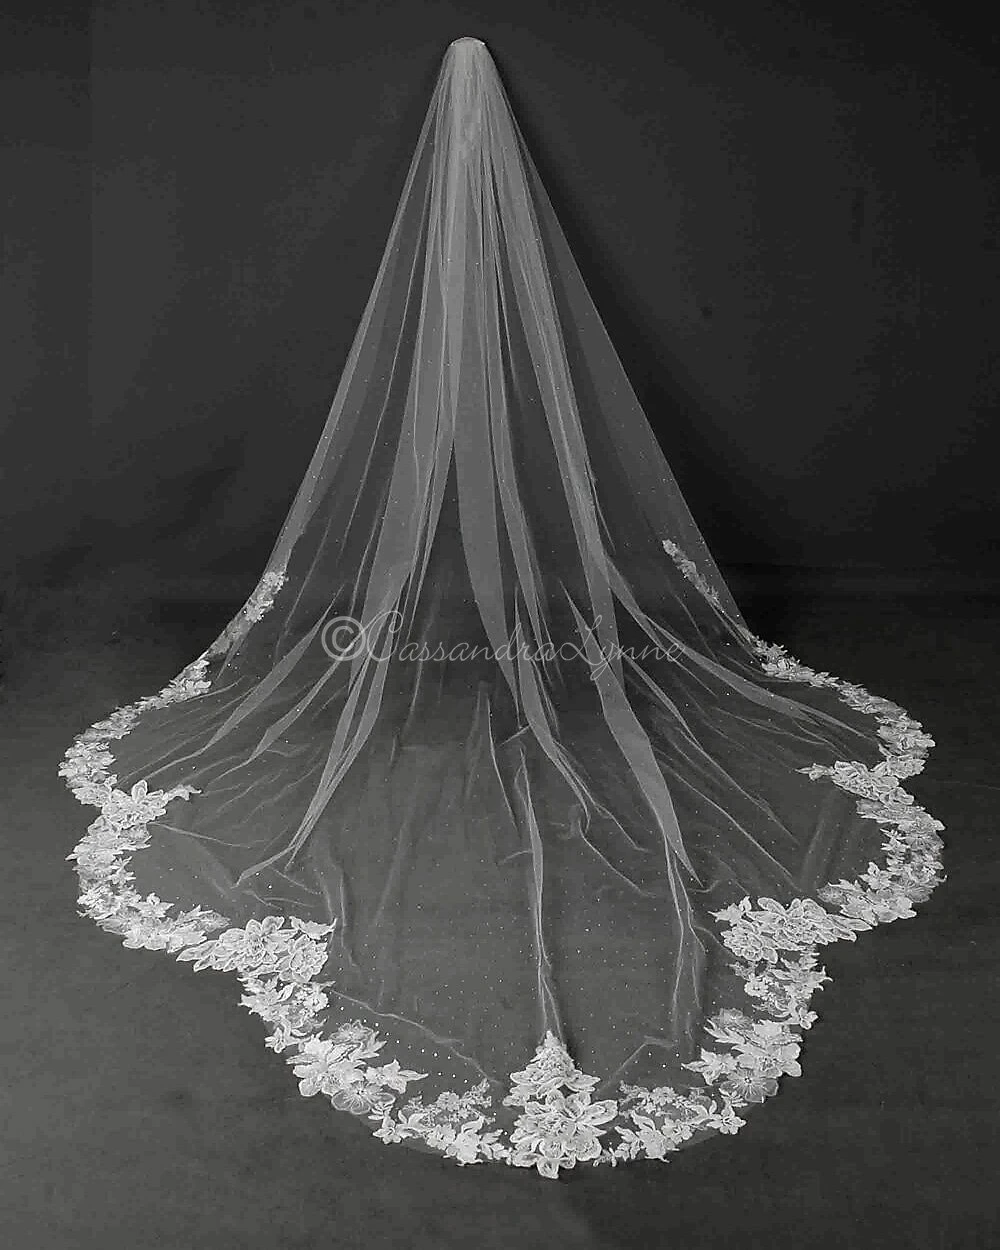 Dramatic Scallop Royal Length Lace Bridal Veil Cathedral Length Wedding Veil Wedding Veil Vintage Simple Wedding Veil - Wedding Veil, 3 Meter White Ivory Cathedral Wedding Veils Long Lace Edge Bridal Veil With Comb Wedding Accessories Bride Veu Wedding Veil Bridal Veil With Comb Cathedral Wedding Veilwedding Veil Aliexpress